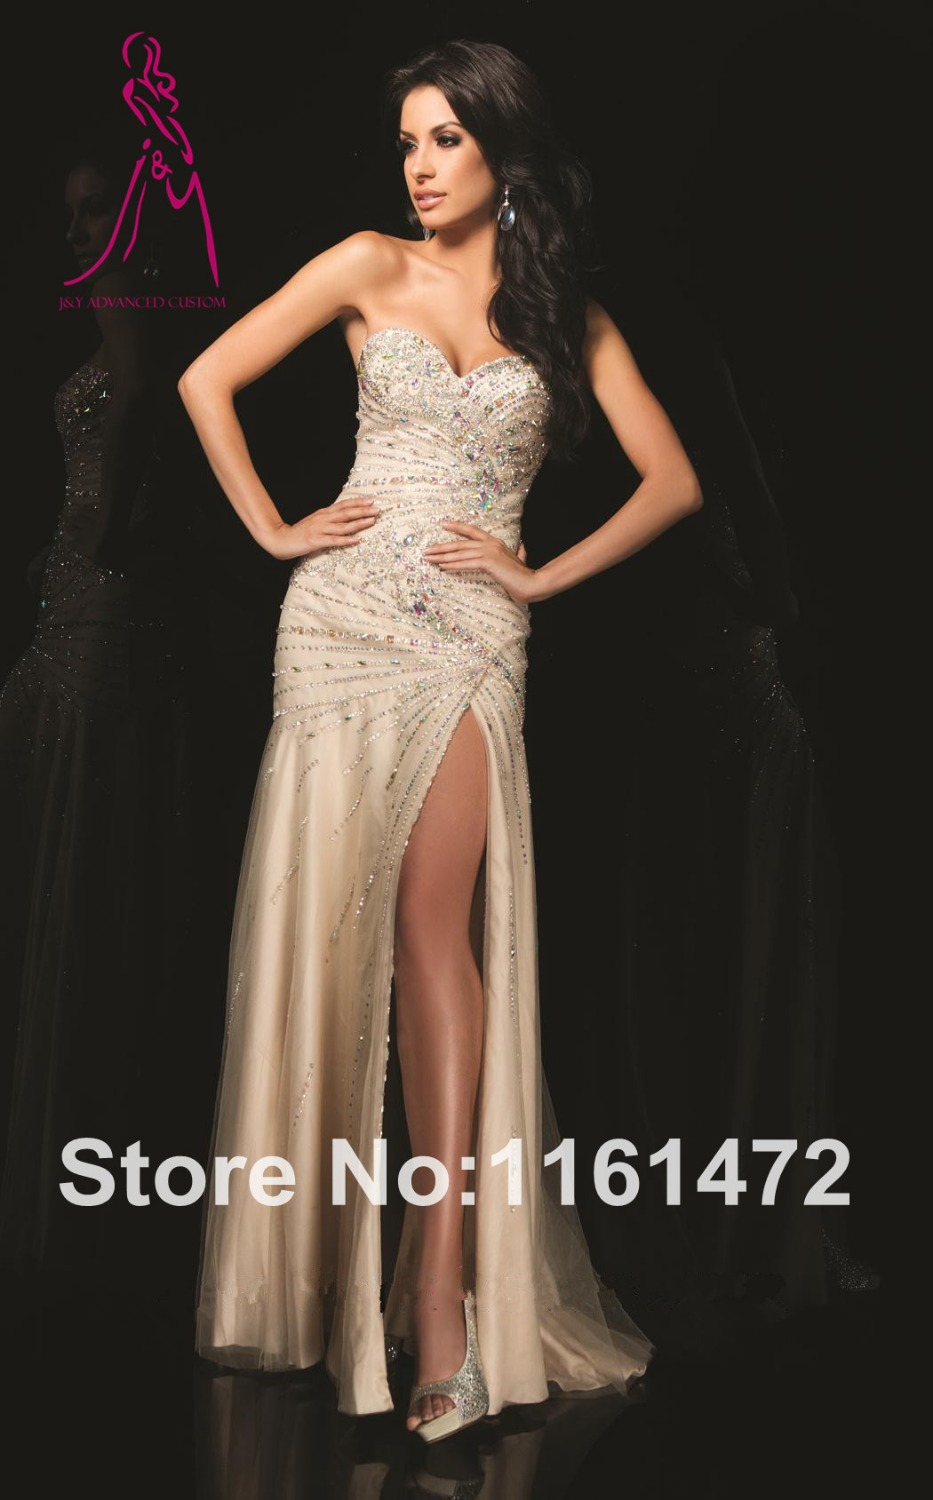 Pretty Red Prom Dresses Las Vegas | Dress images